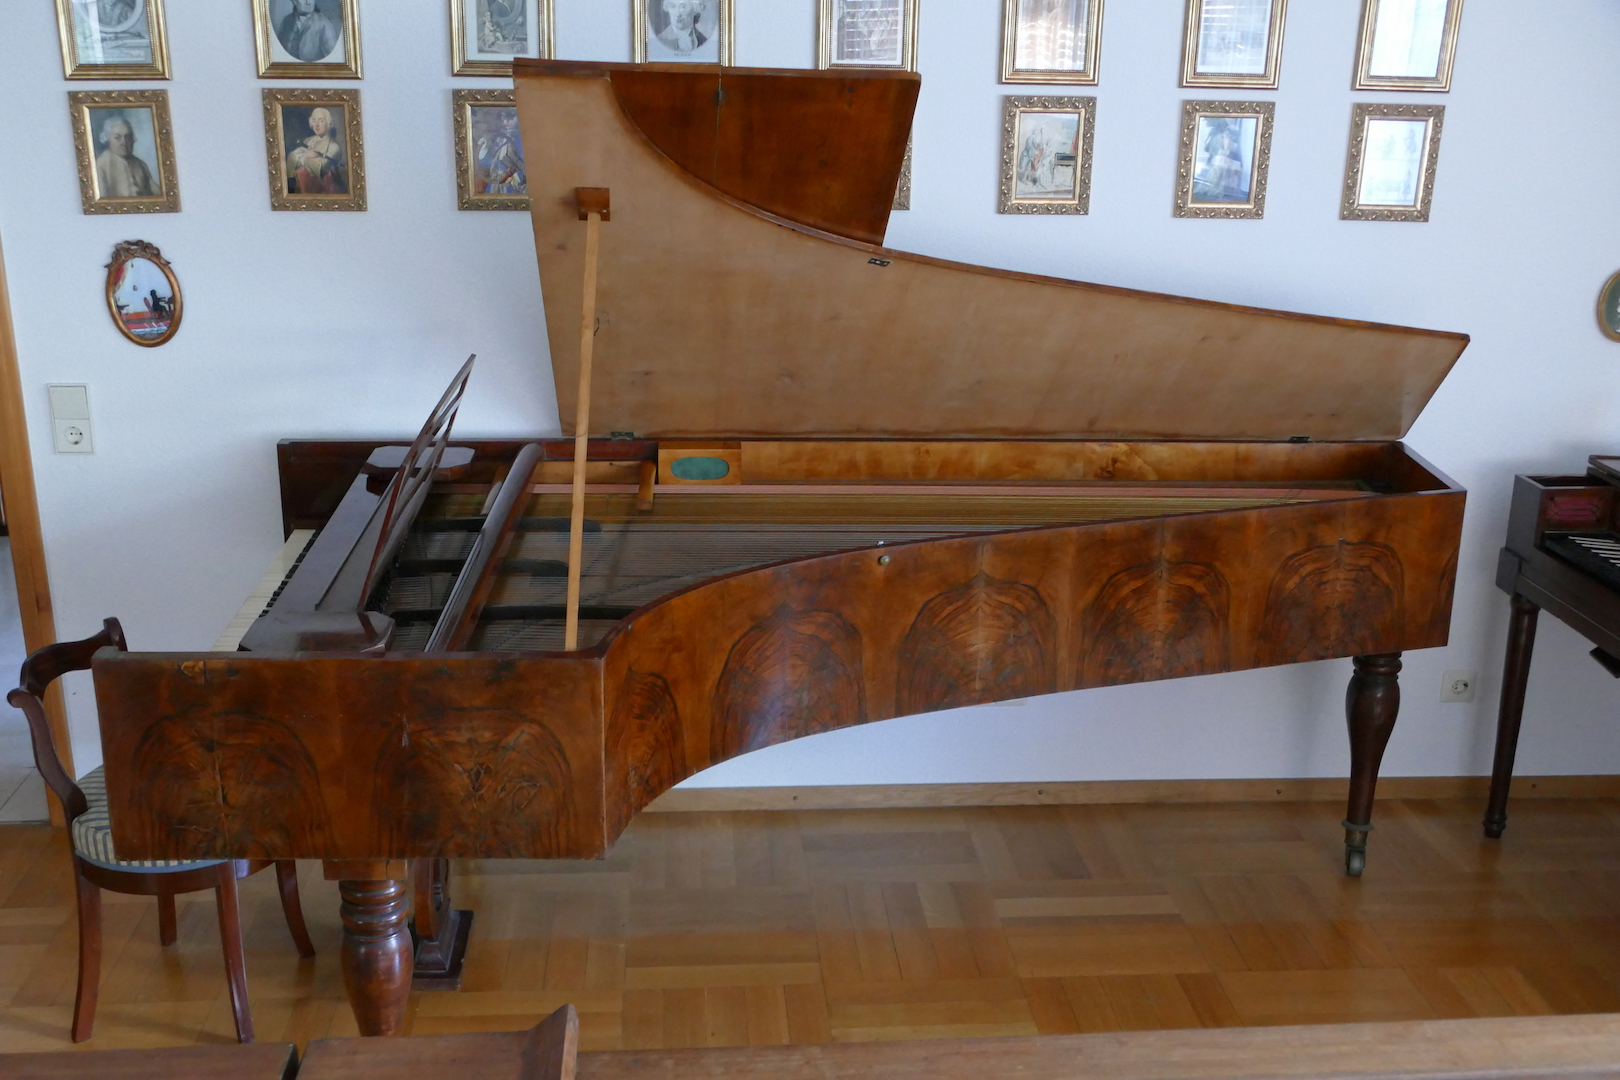 Viennese fortepiano for sale